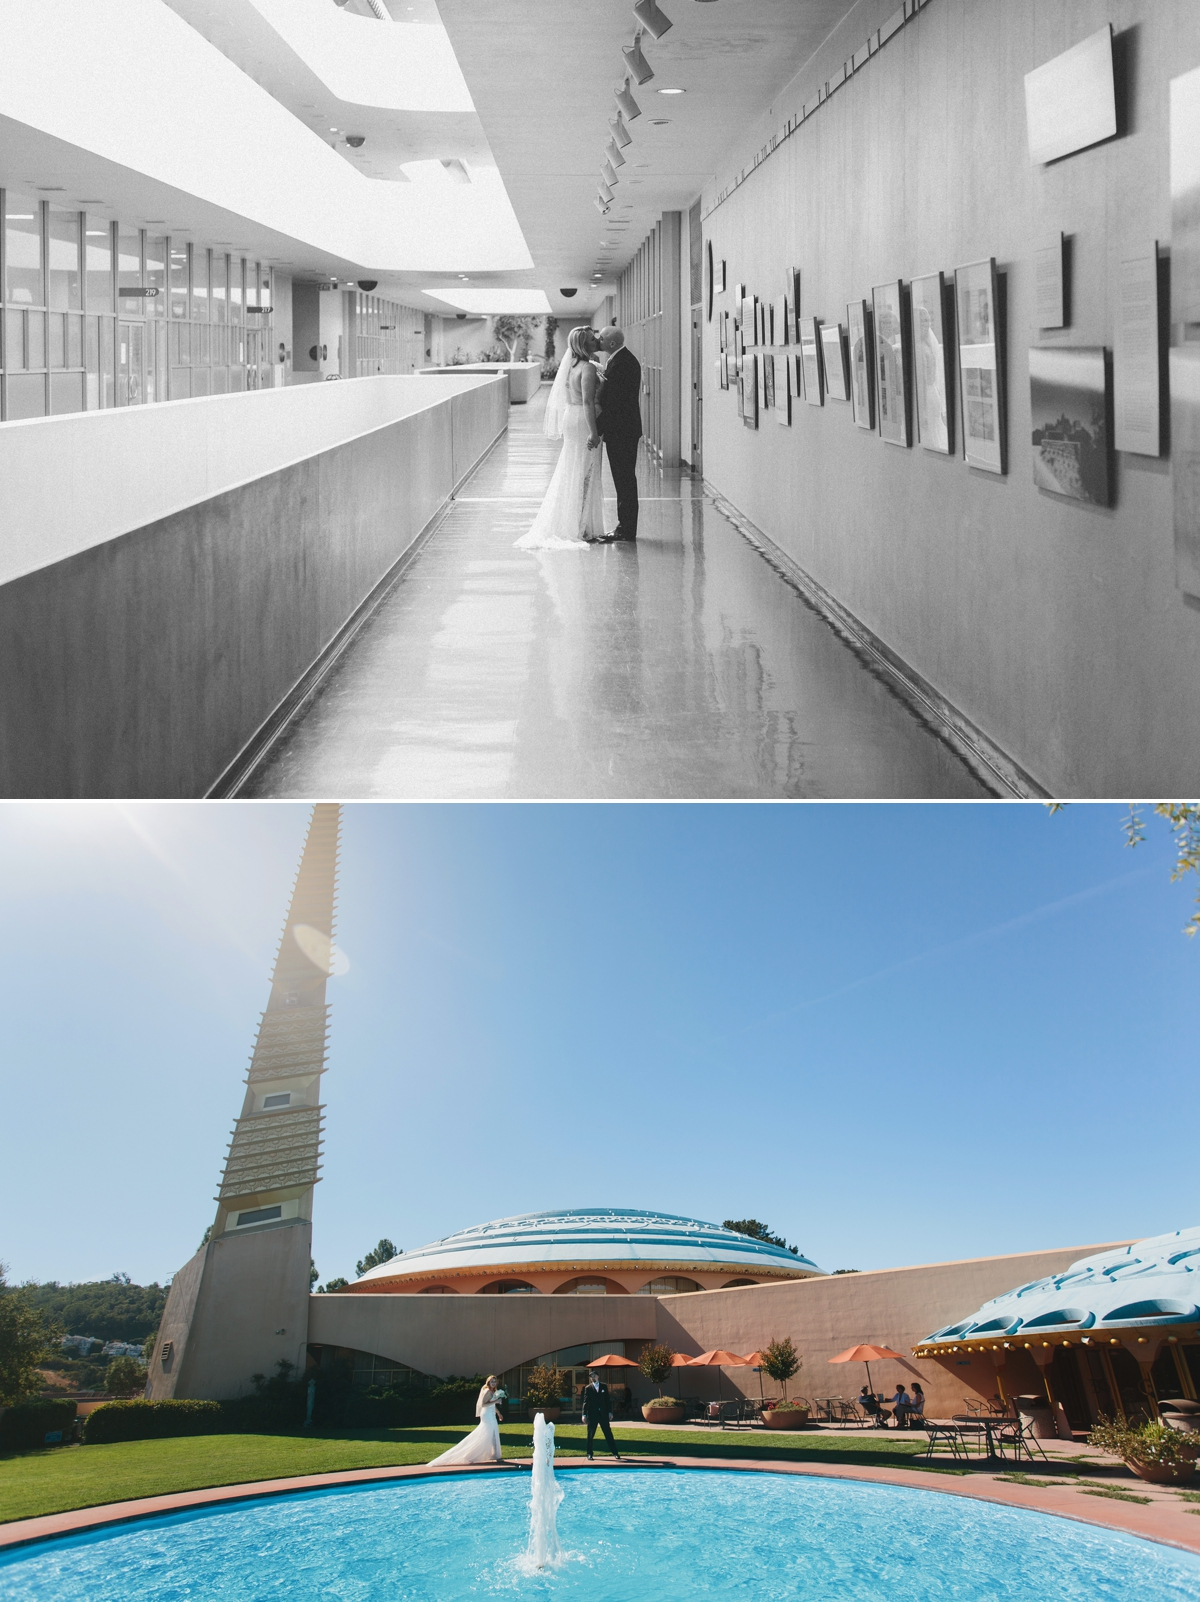 The super 60's style of the Marin Civic Center looks like something from the Jetsons!